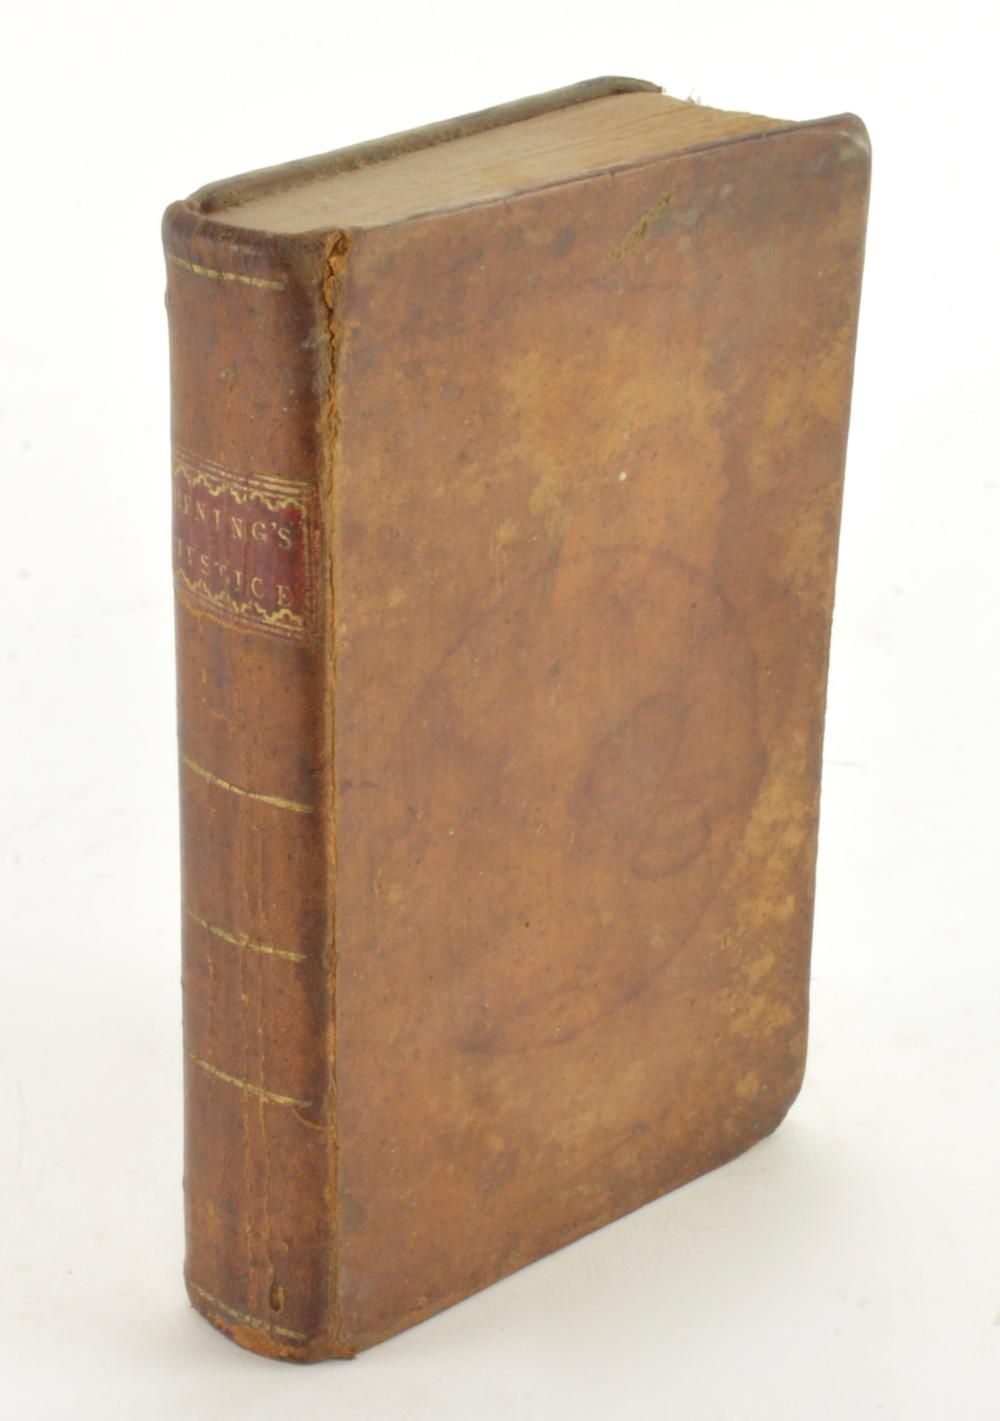 Henings Justice 1795 New Virginia Justice By Hening Richmond